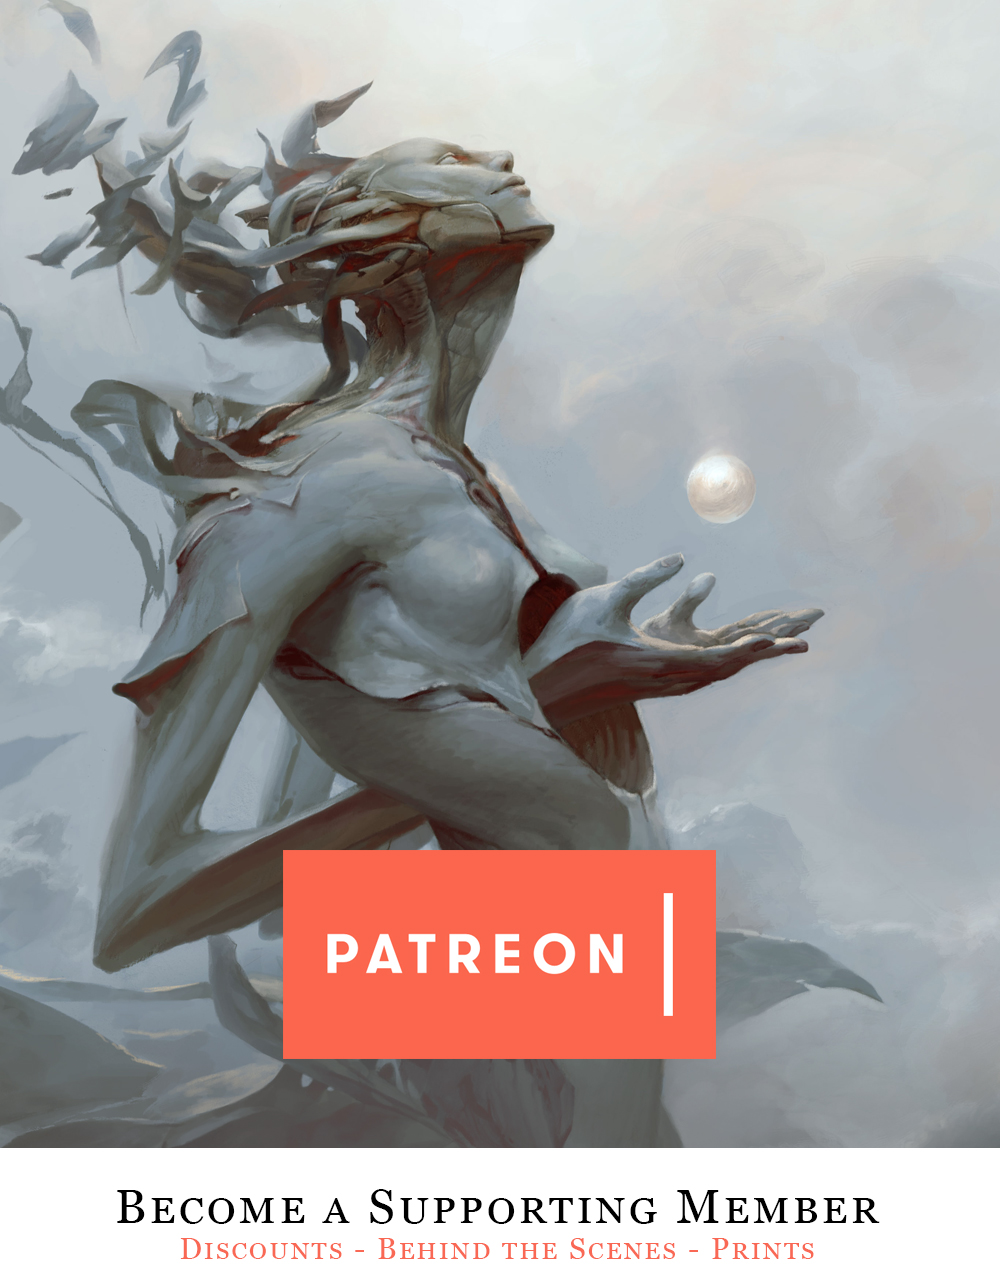 patreon-block-banner.jpg